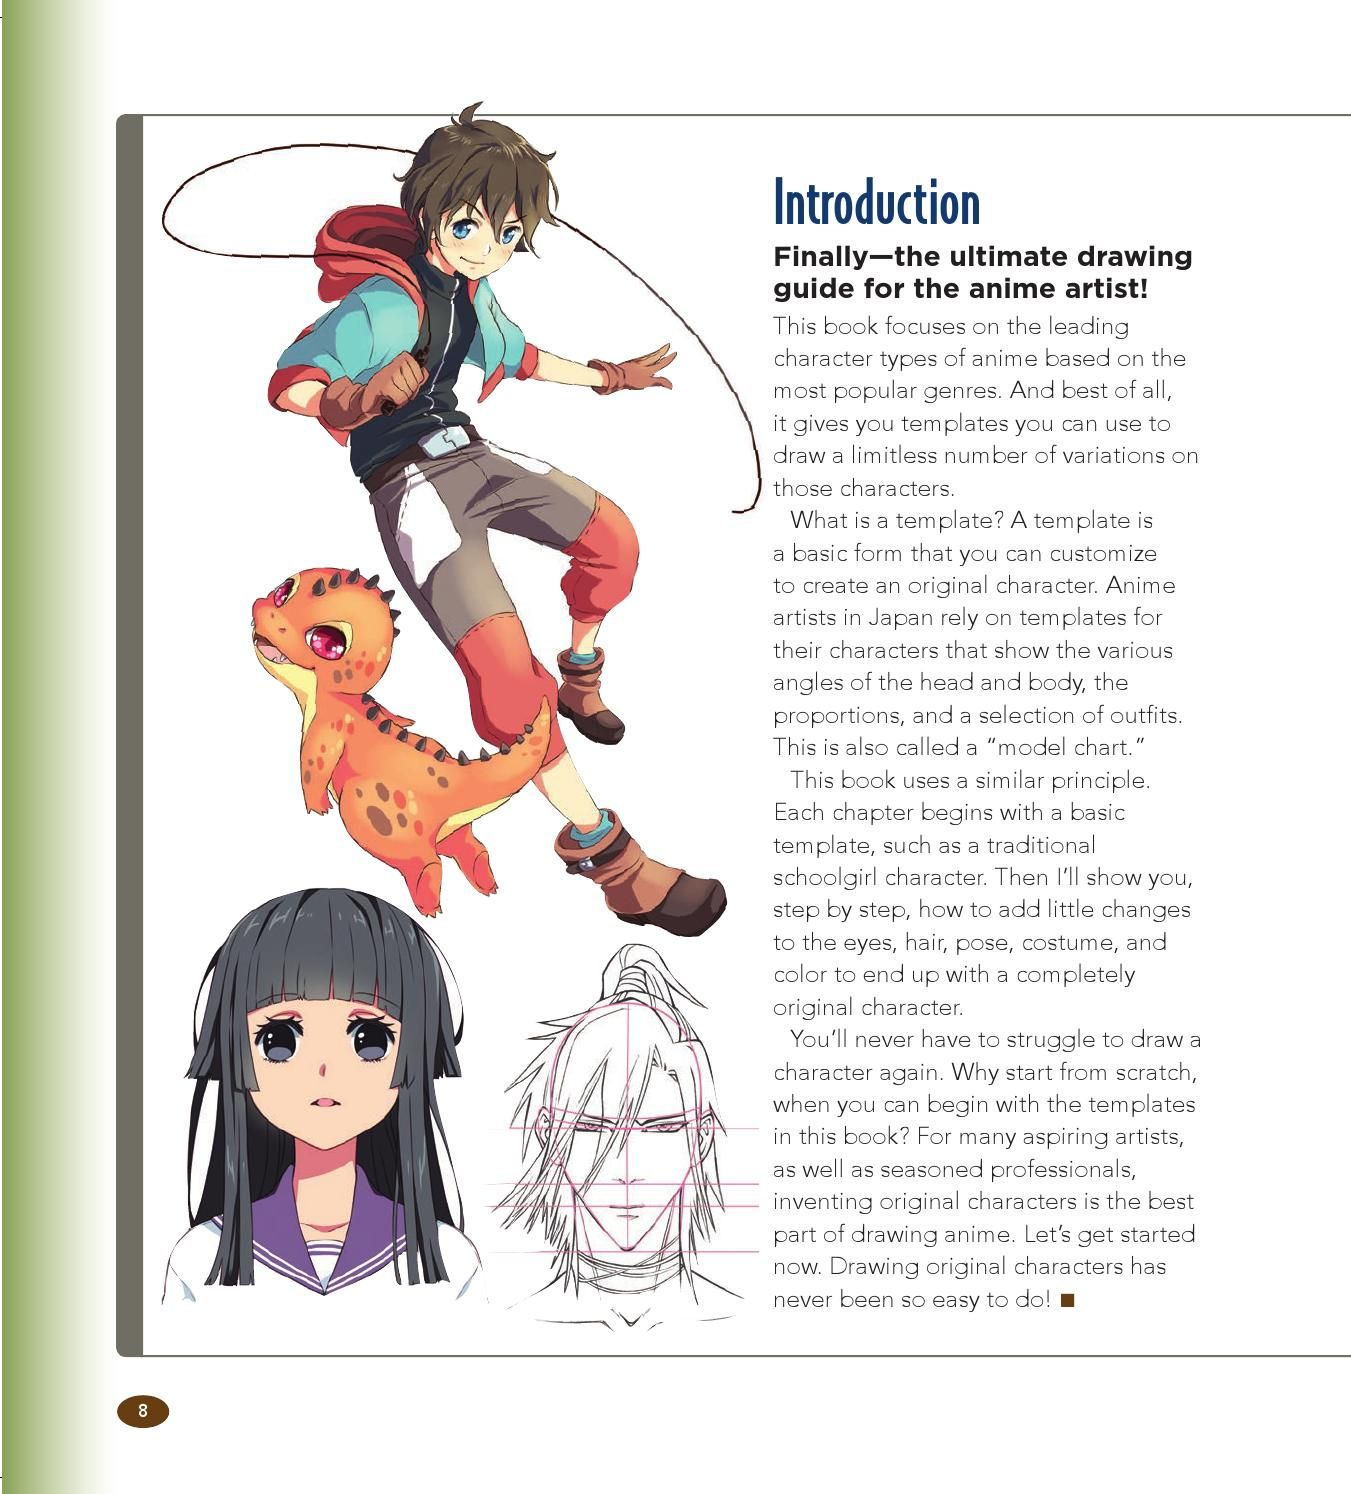 The Master Guide To Drawing Anime How To Draw Original Characters From Simple Templates Popular Anime Graphic Novel Anime